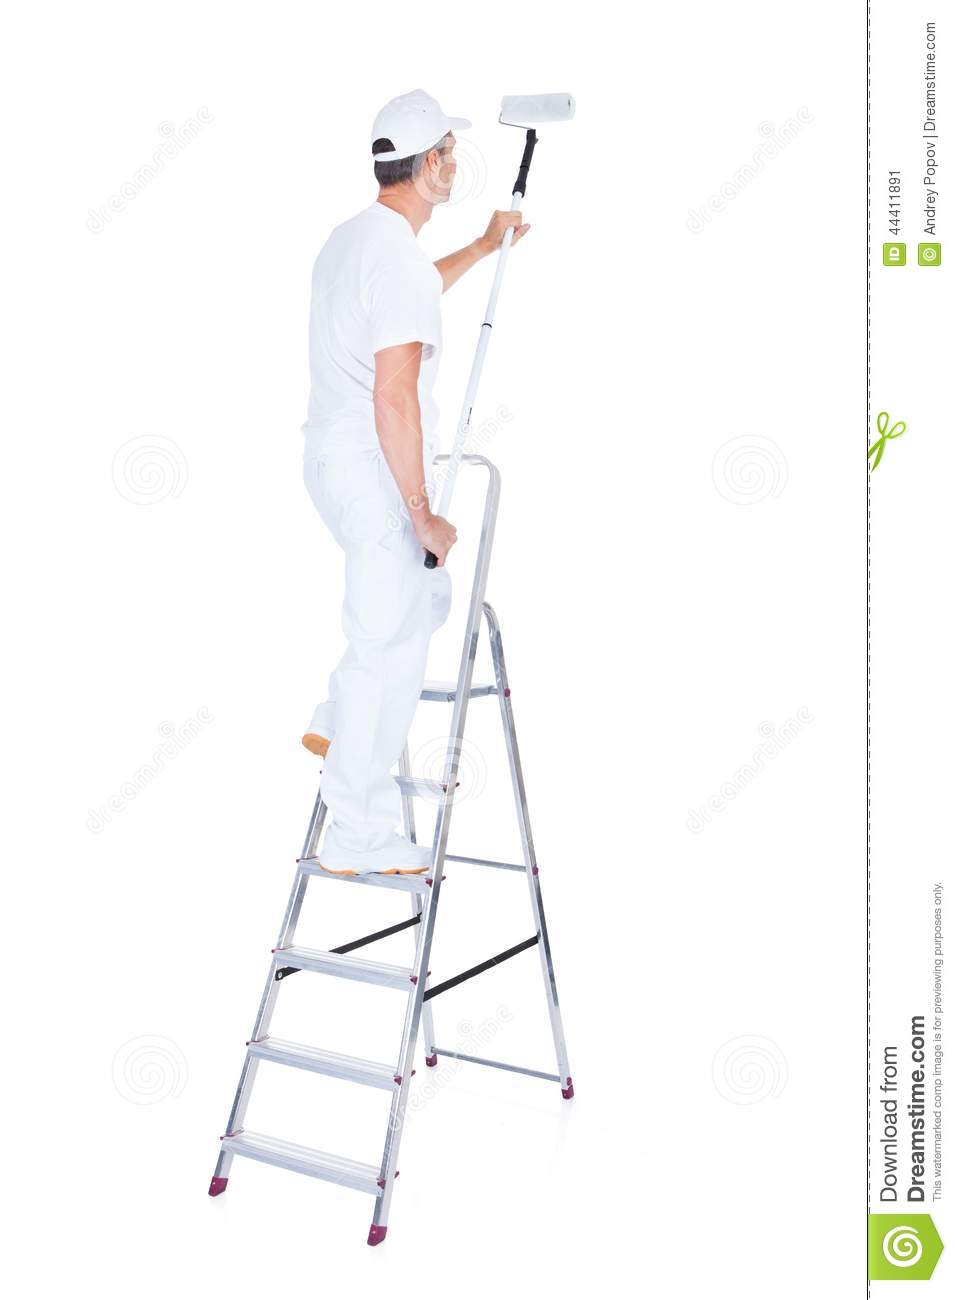 Painter And Decorator Prices >> Painter With Paint Roller And Ladder Stock Image - Image of ladder, decorator: 44411891